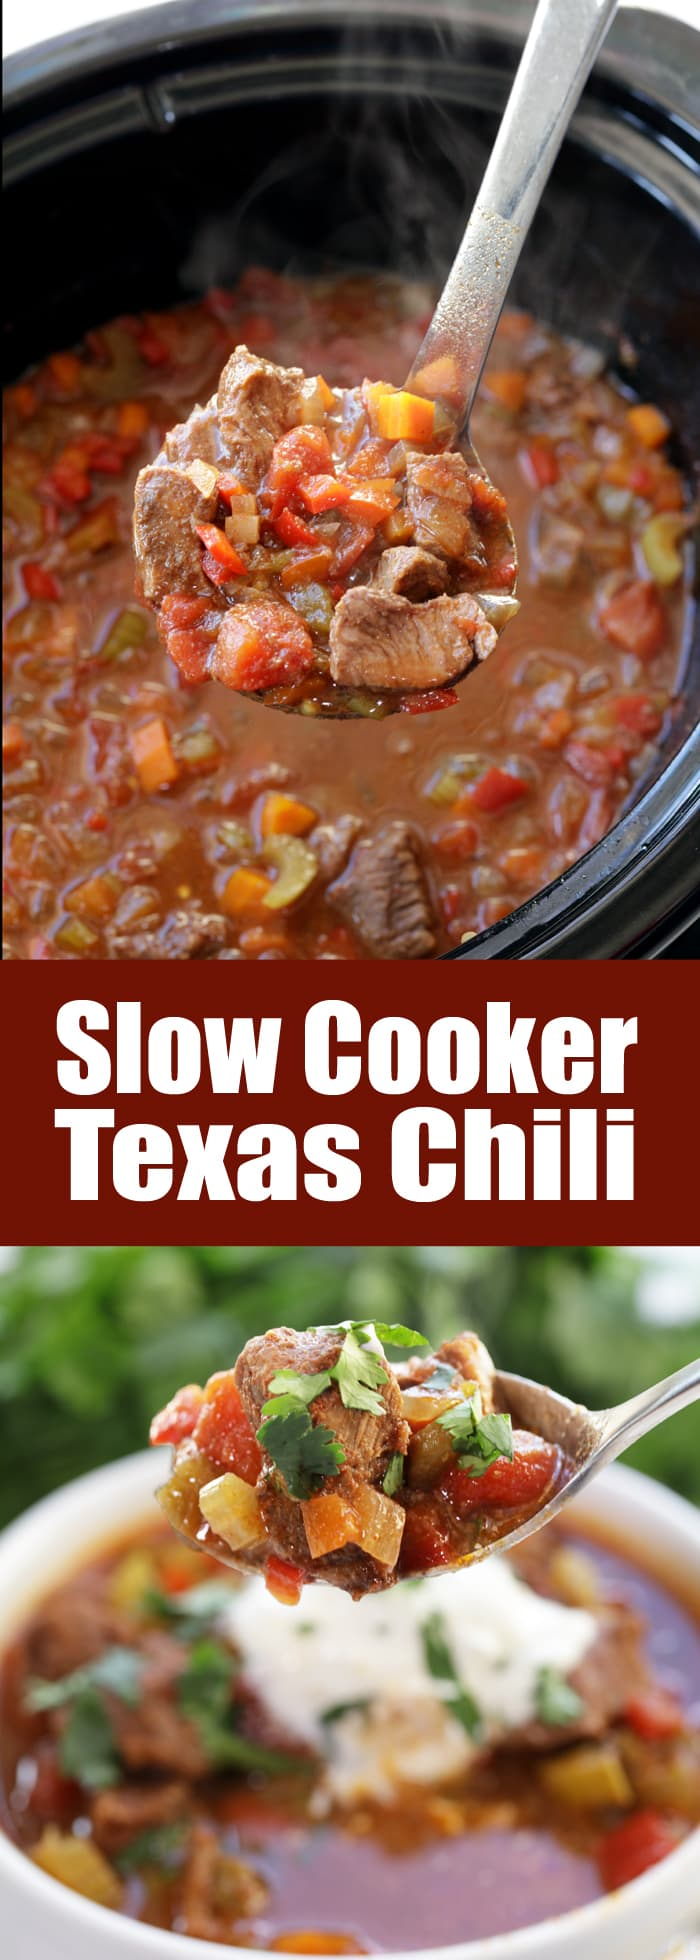 Hearty chunks of beef make up this amazing Slow Cooker Texas Beef Chili. No beans, just flavor! This is a chili everyone will love!